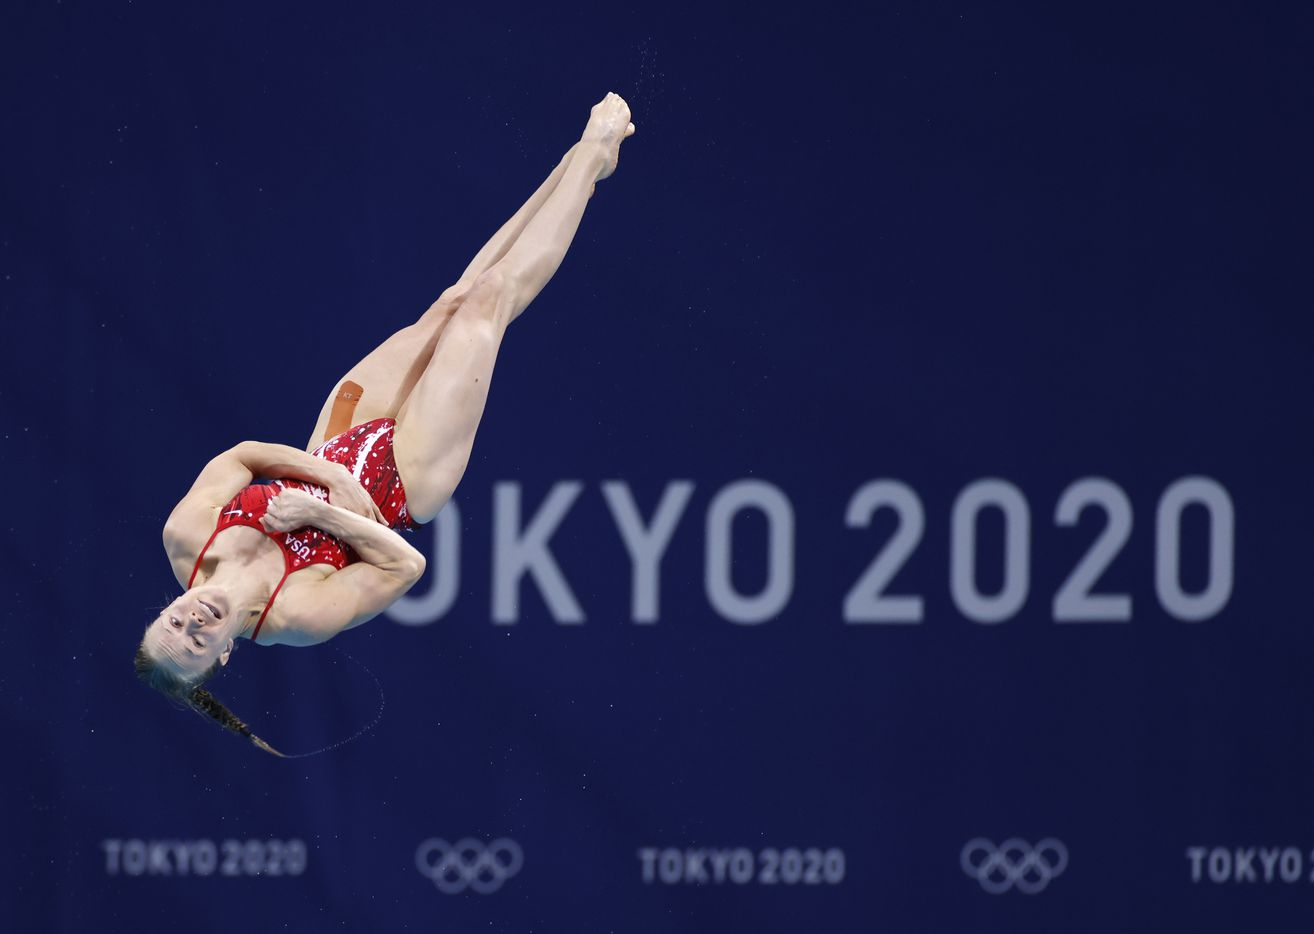 USA's Krysta Palmer dives in round 5 of 5 In the women's 3 meter springboard semifinal competition during the postponed 2020 Tokyo Olympics at Tokyo Aquatics Centre, on Saturday, July 31, 2021, in Tokyo, Japan. Palmer finished the day in 5th place with a score of 316.65 to qualify for the next round. (Vernon Bryant/The Dallas Morning News)